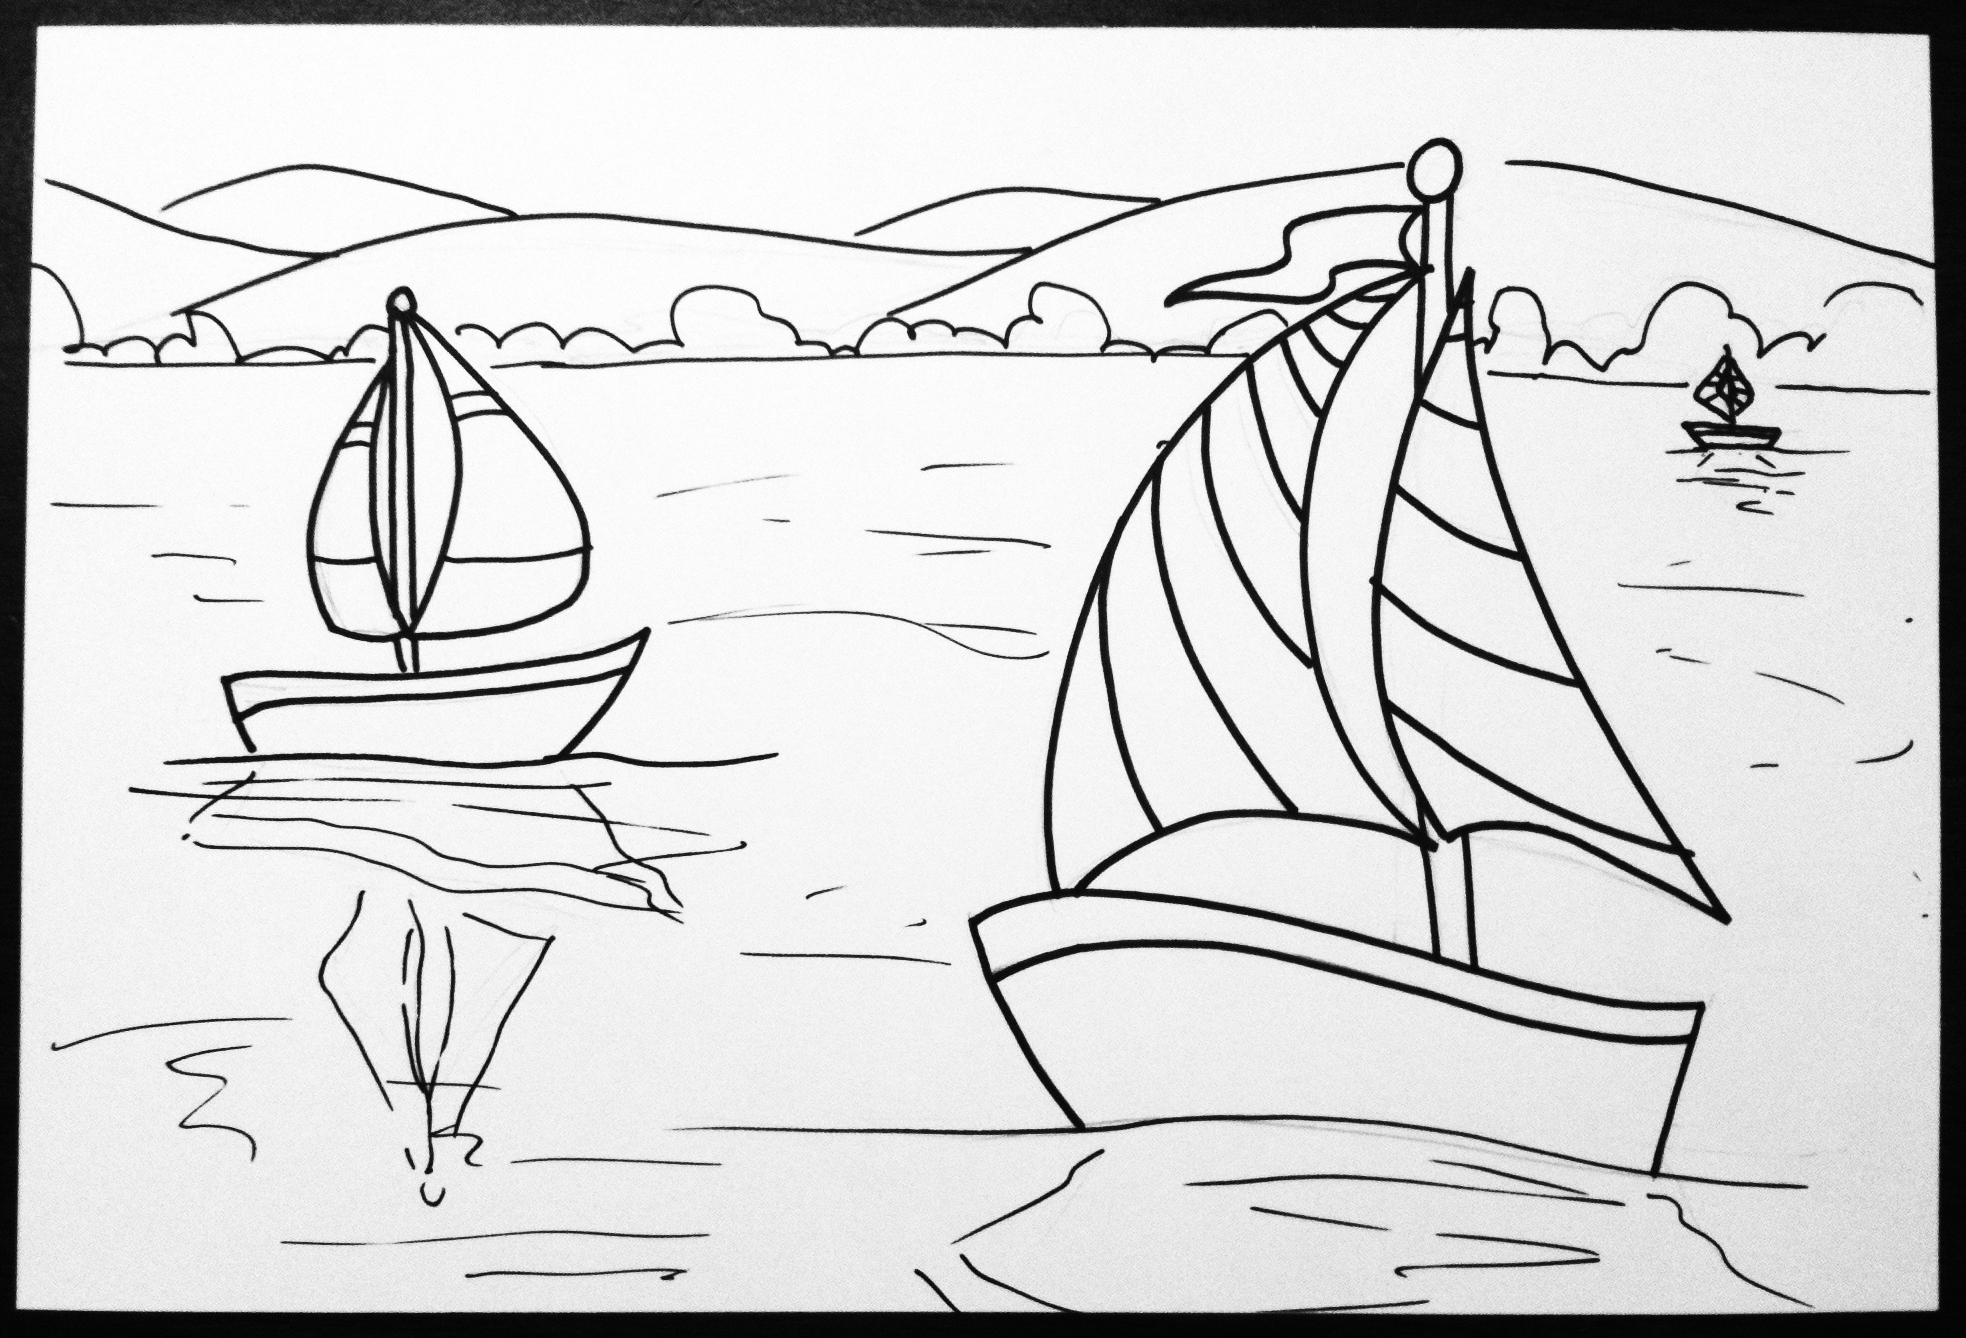 Line Art Grade 2 : Space and claude monet sailboat art lesson create